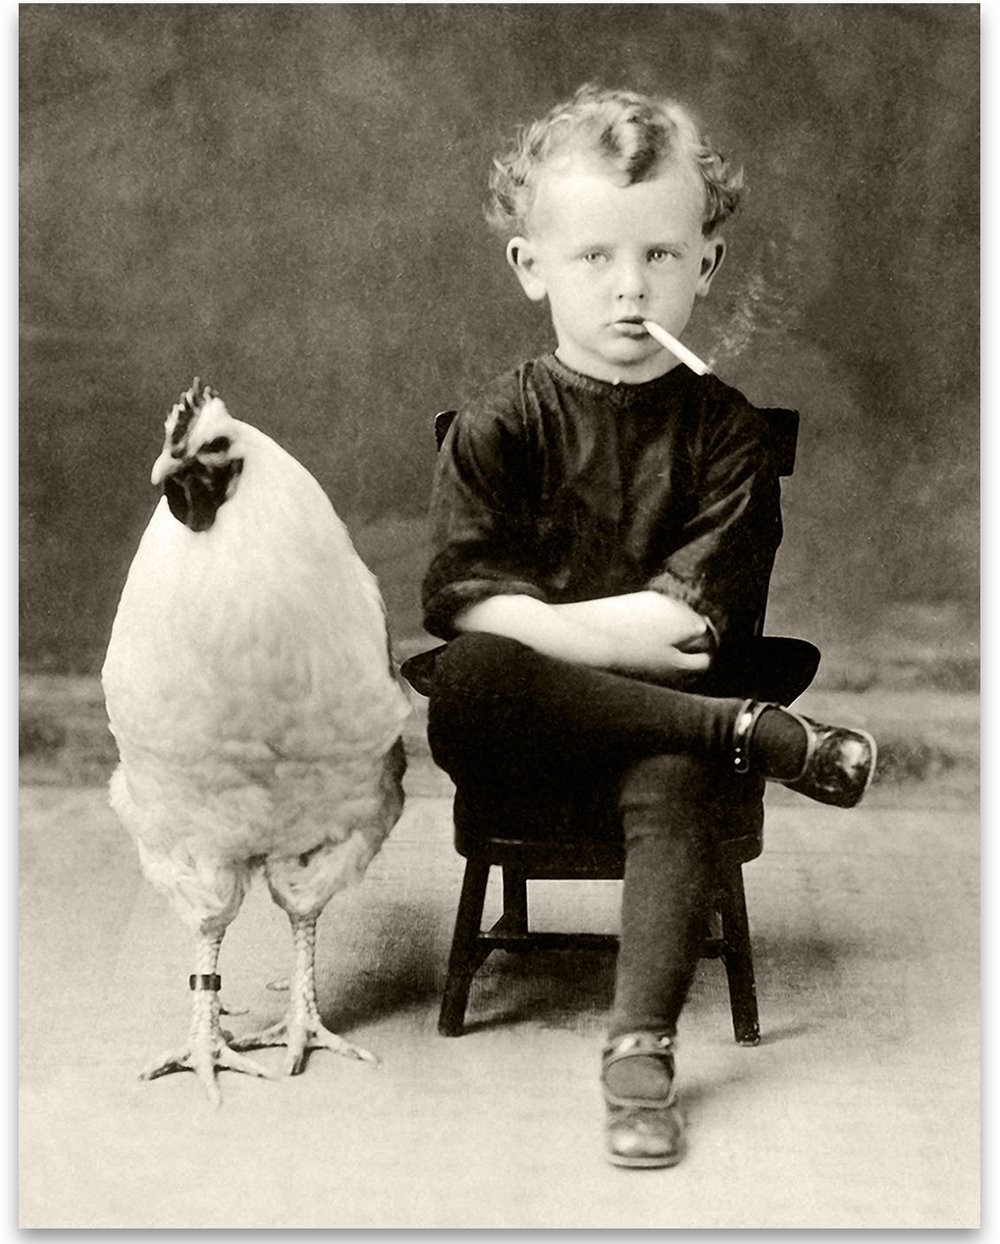 Lone Star Art Bizarre Strange Weird Boy Smoking Cigarette with Giant Chicken - 11x14 Unframed Print - Perfect Vintage Home Decor Under $10